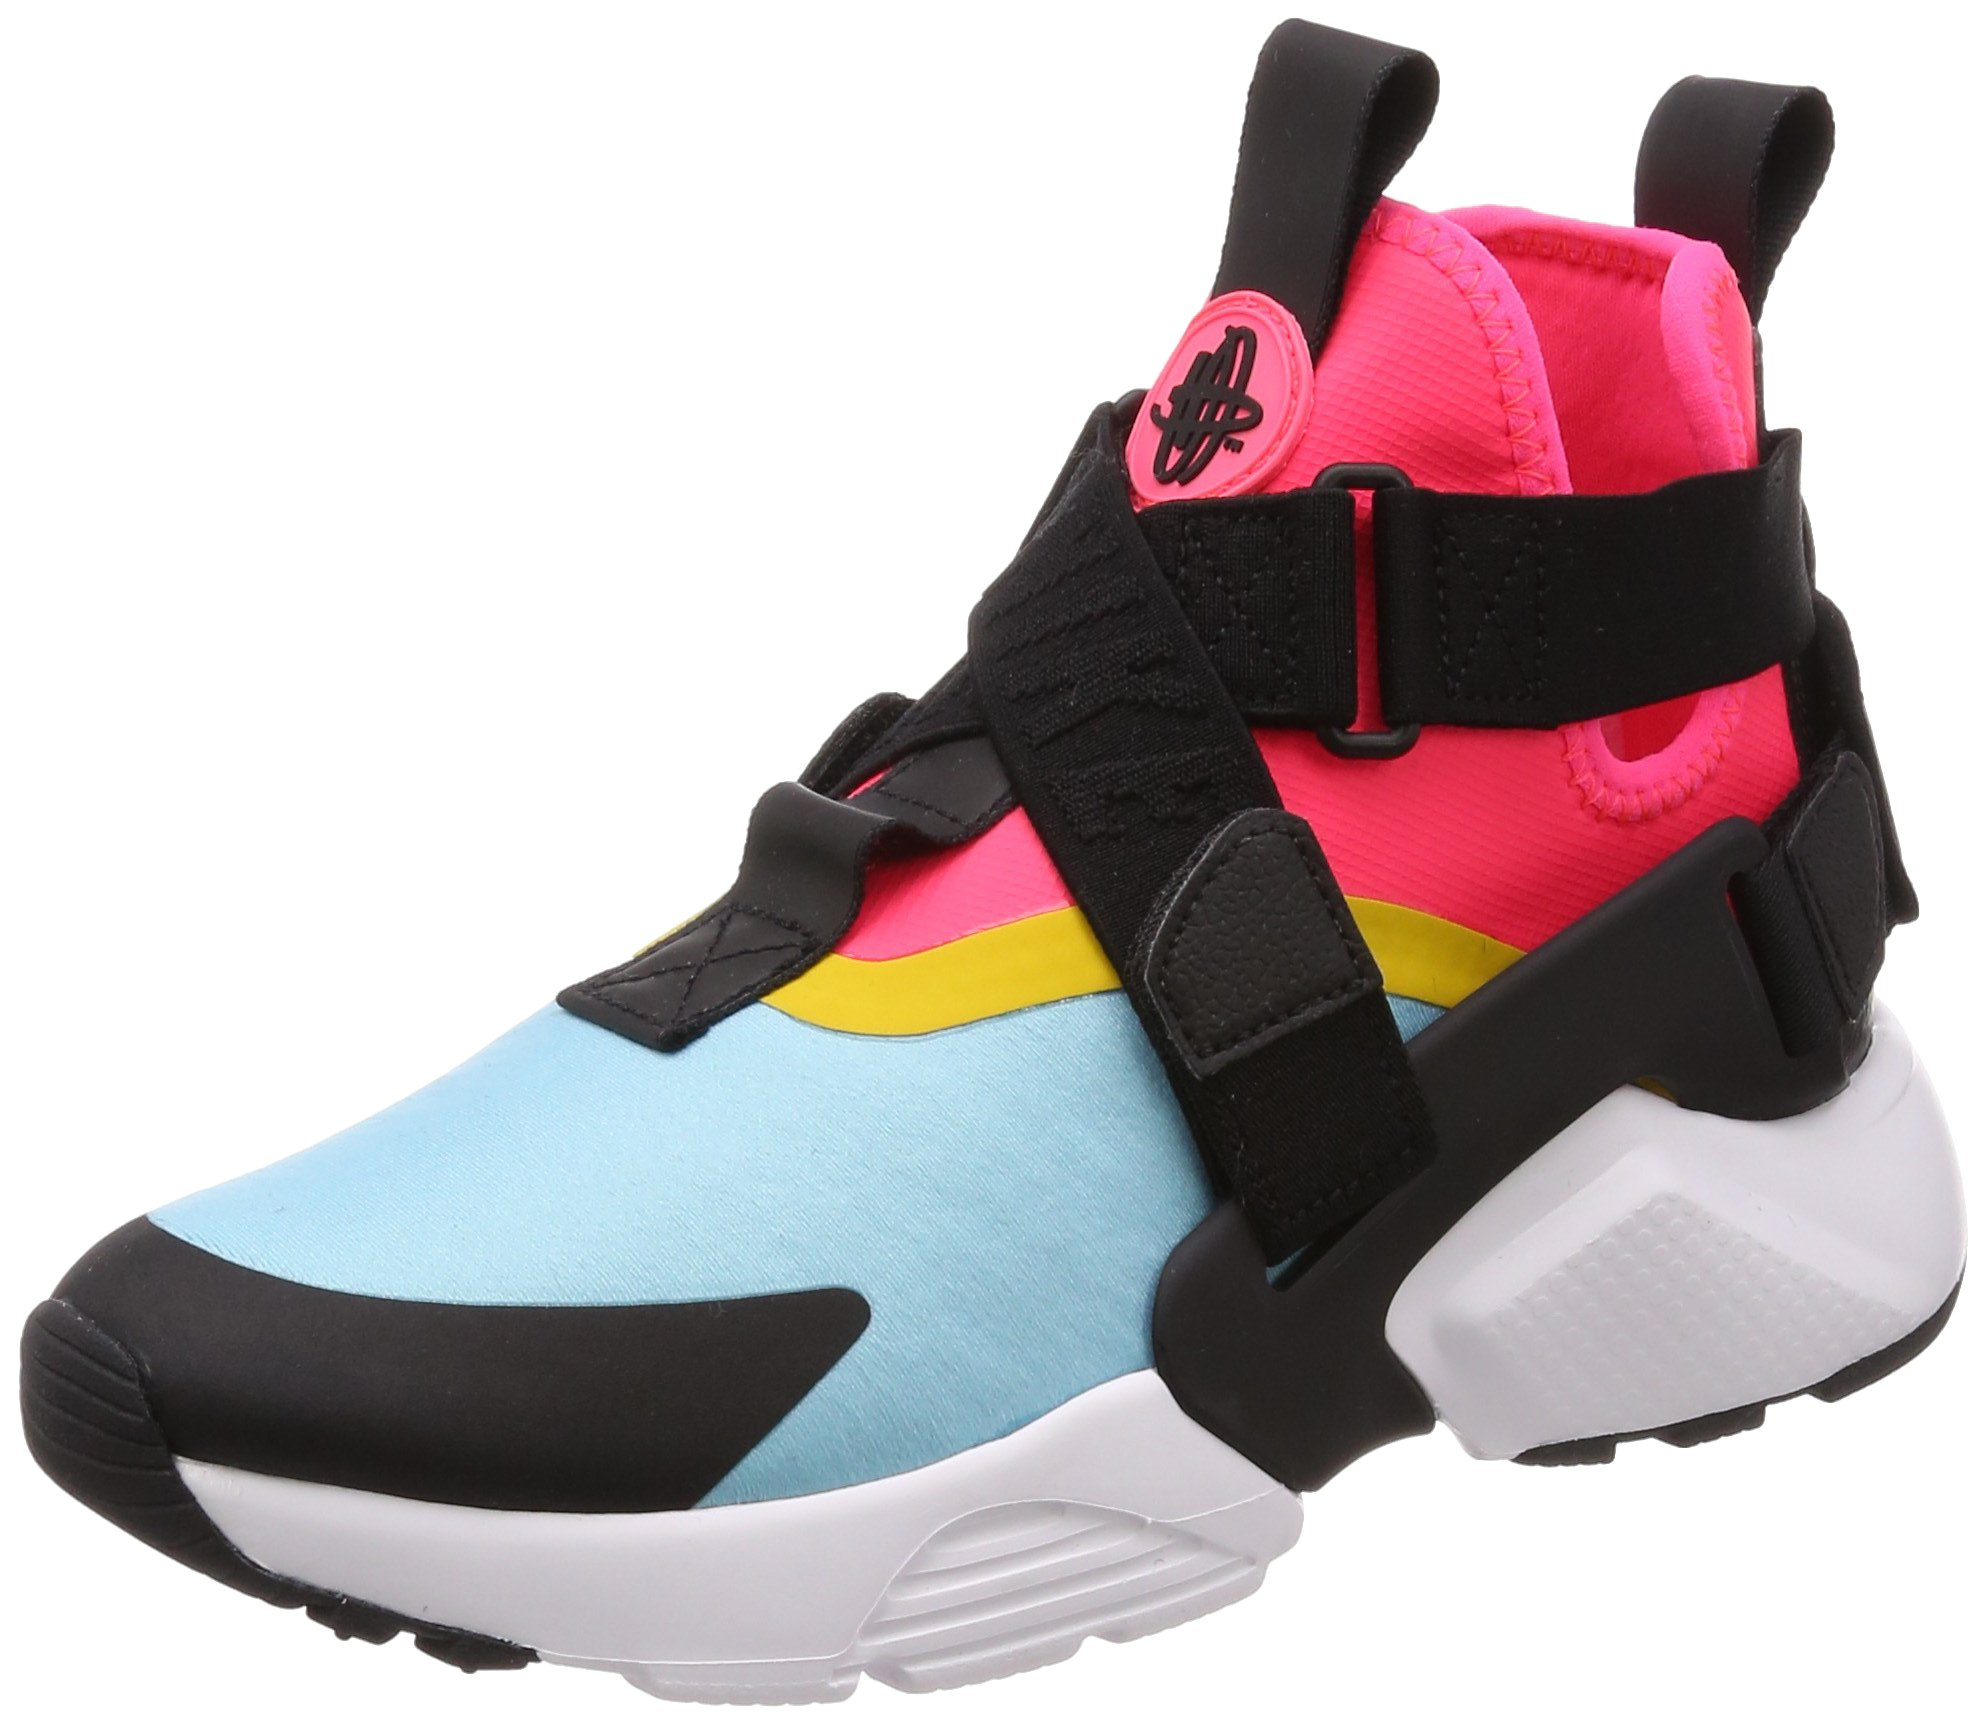 5f8af33ccbd4 Galleon - NIKE Women s Air Huarache City Low-Top Sneakers ...